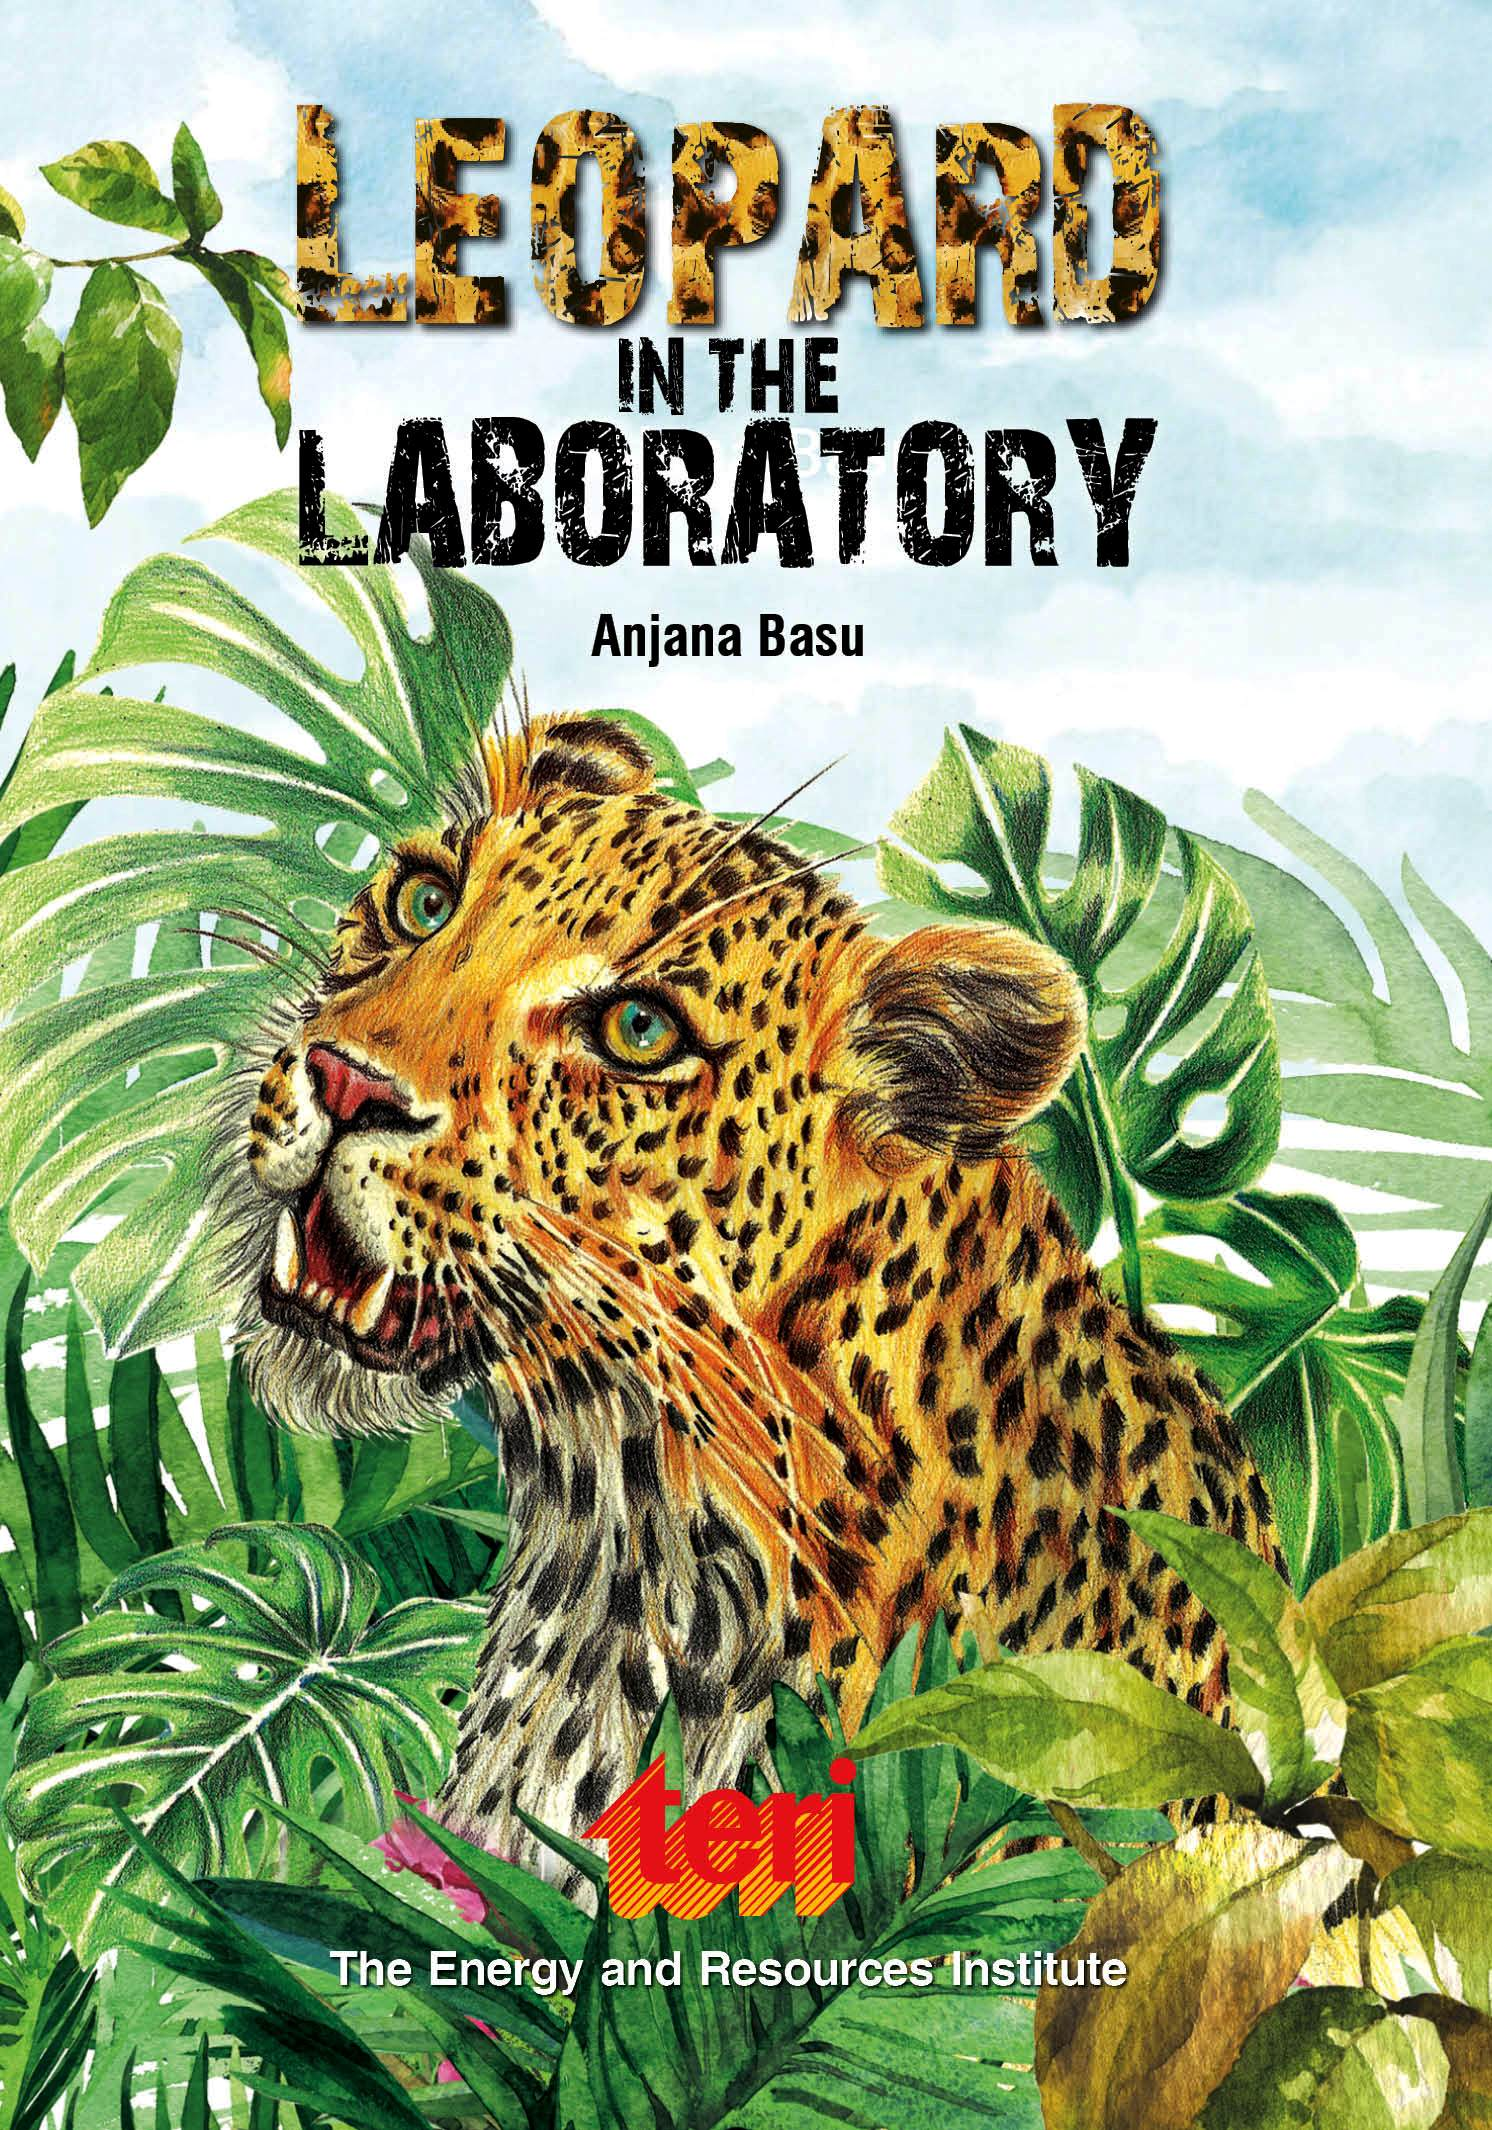 Book Cover of 'Leapord in the Laboratory'.